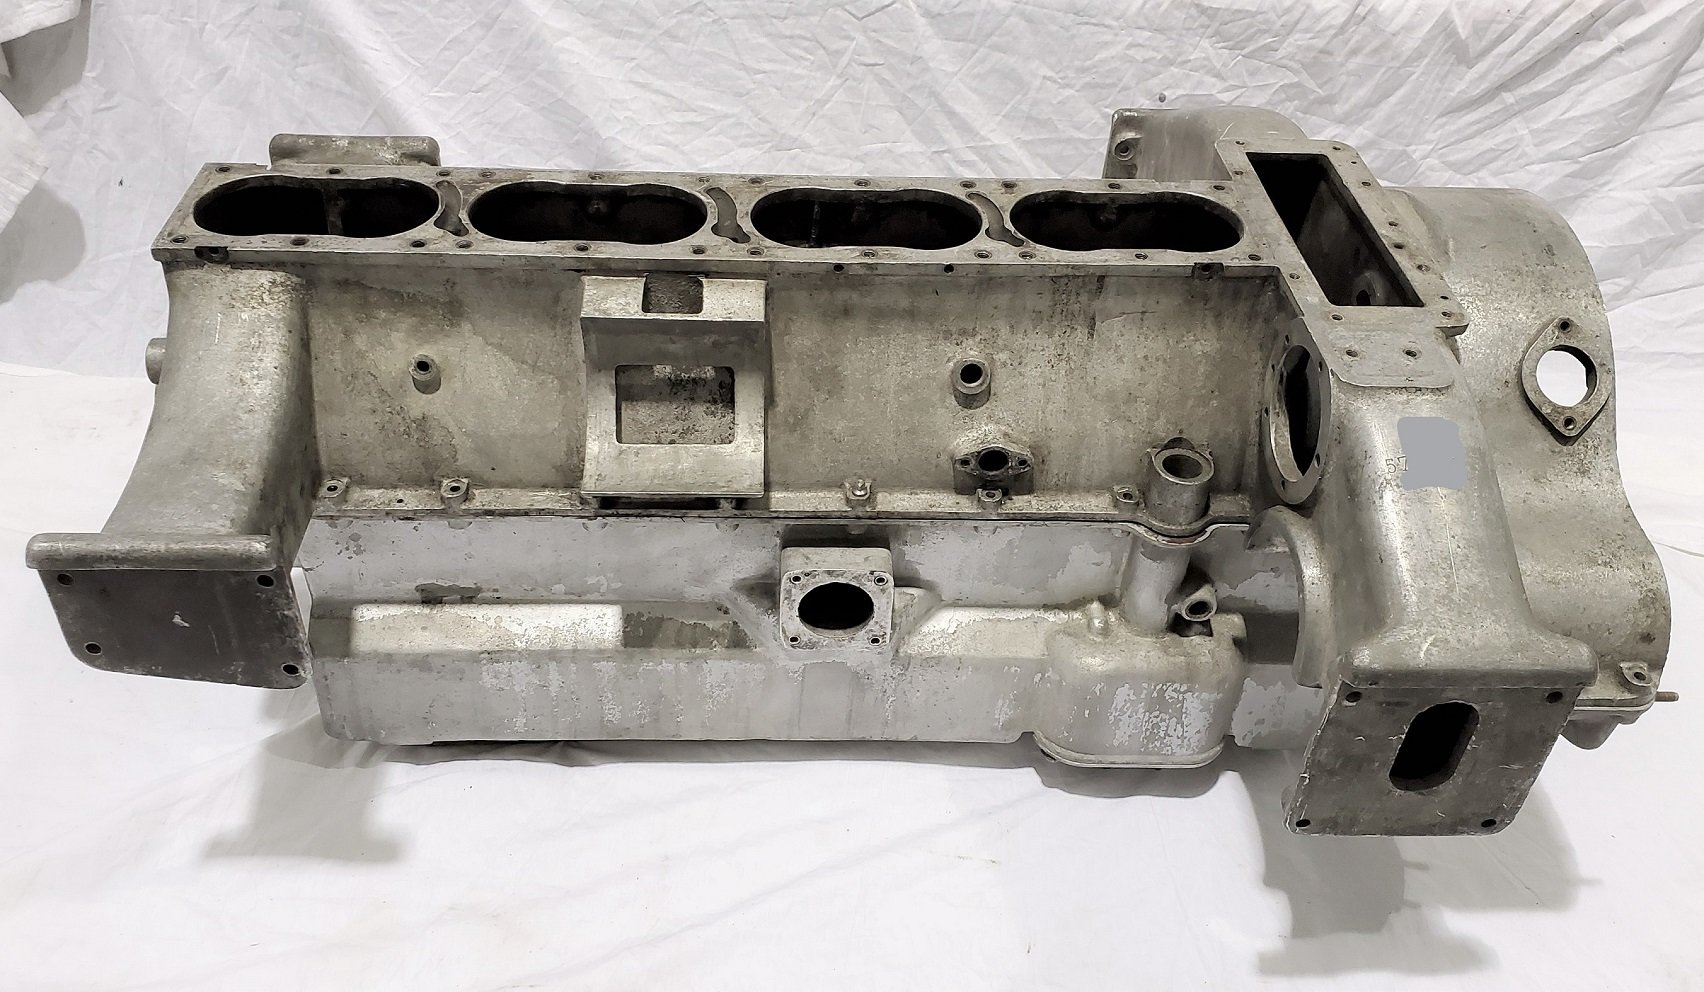 1934 Bugatti Type 57 Motor for Project - PRICE REDUCED For Sale (picture 2 of 7)